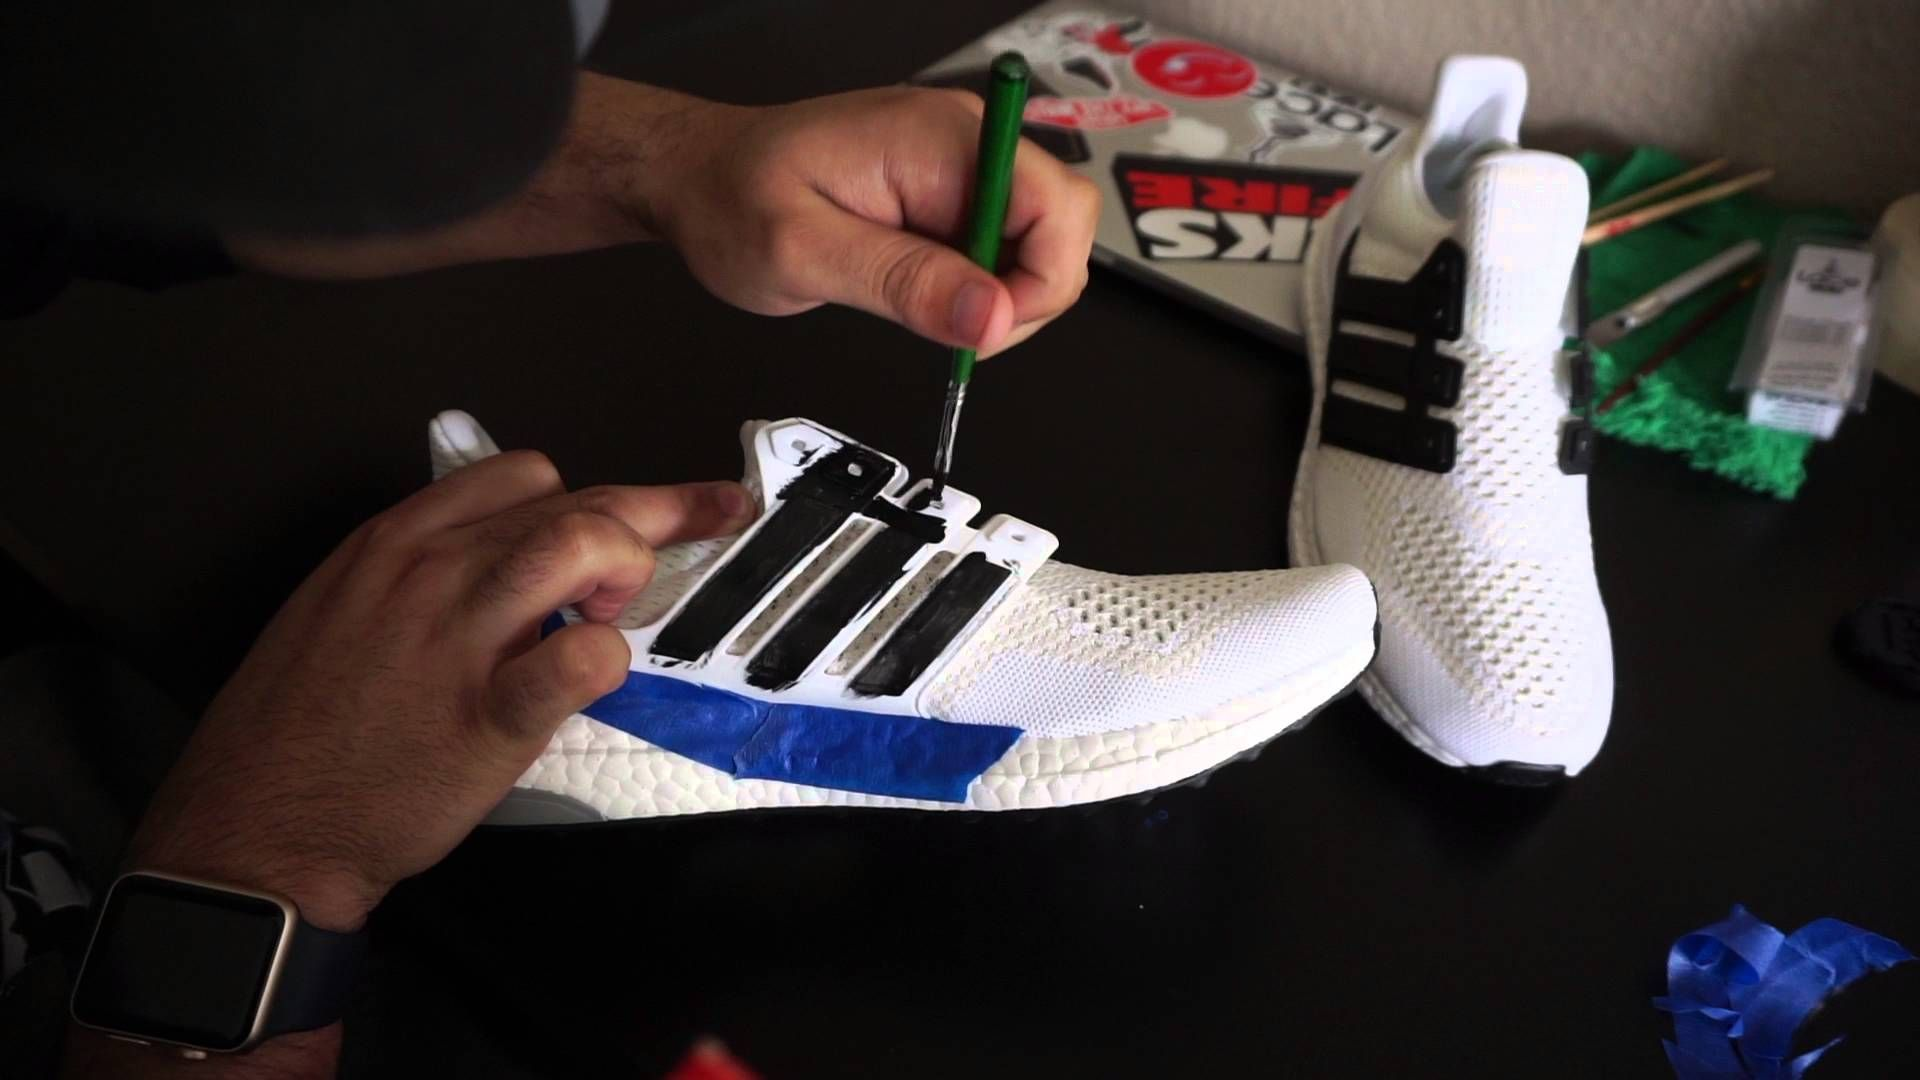 ded838a5a0b35 Custom White Ultraboost!!! black caged boost tutorial + On Feet ...